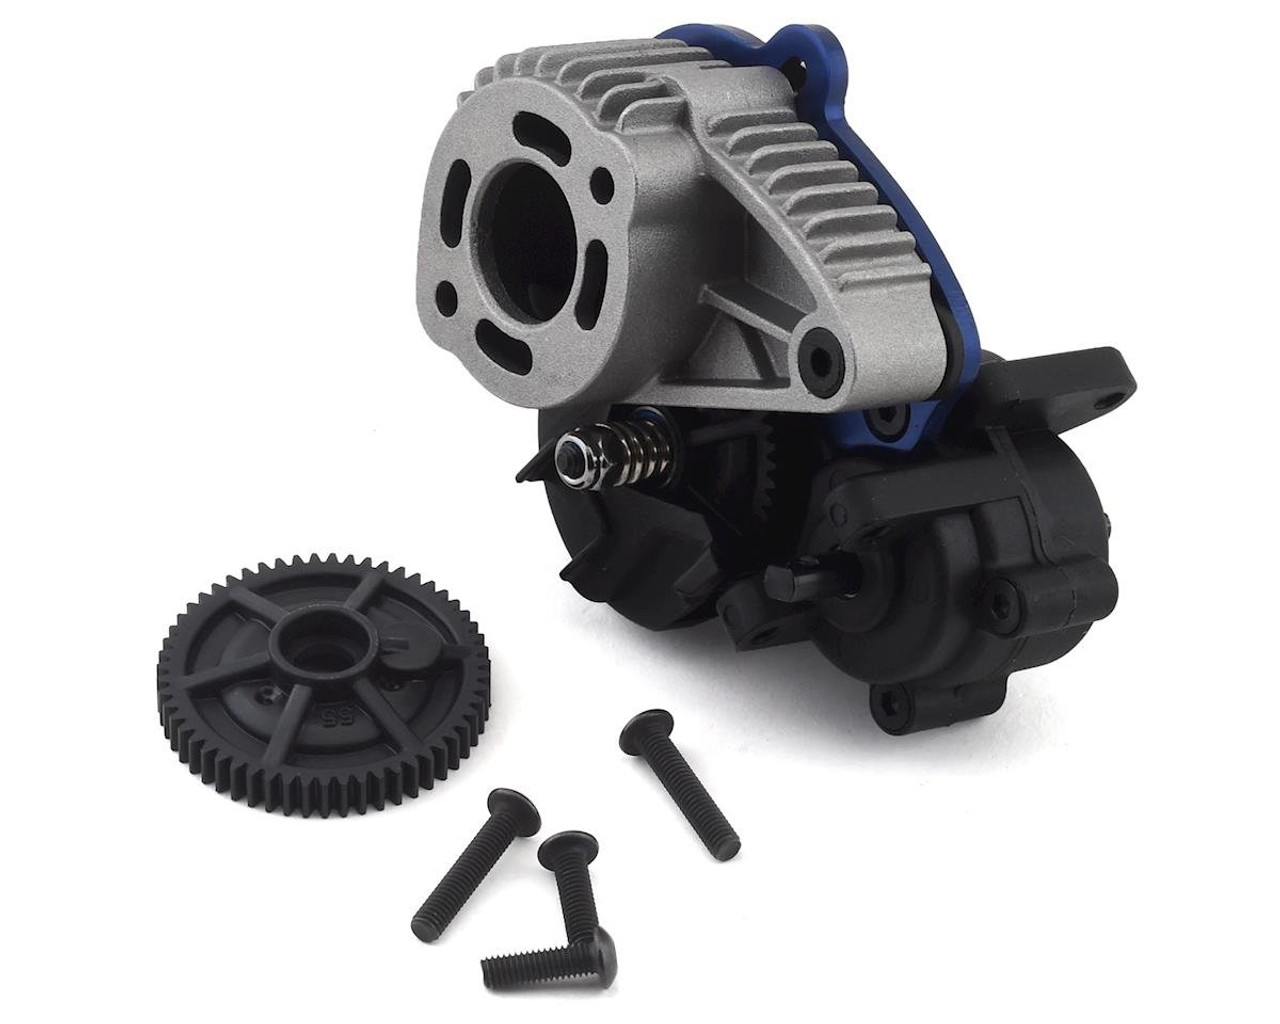 Traxxas 7095 Complete Transmission, 1/16